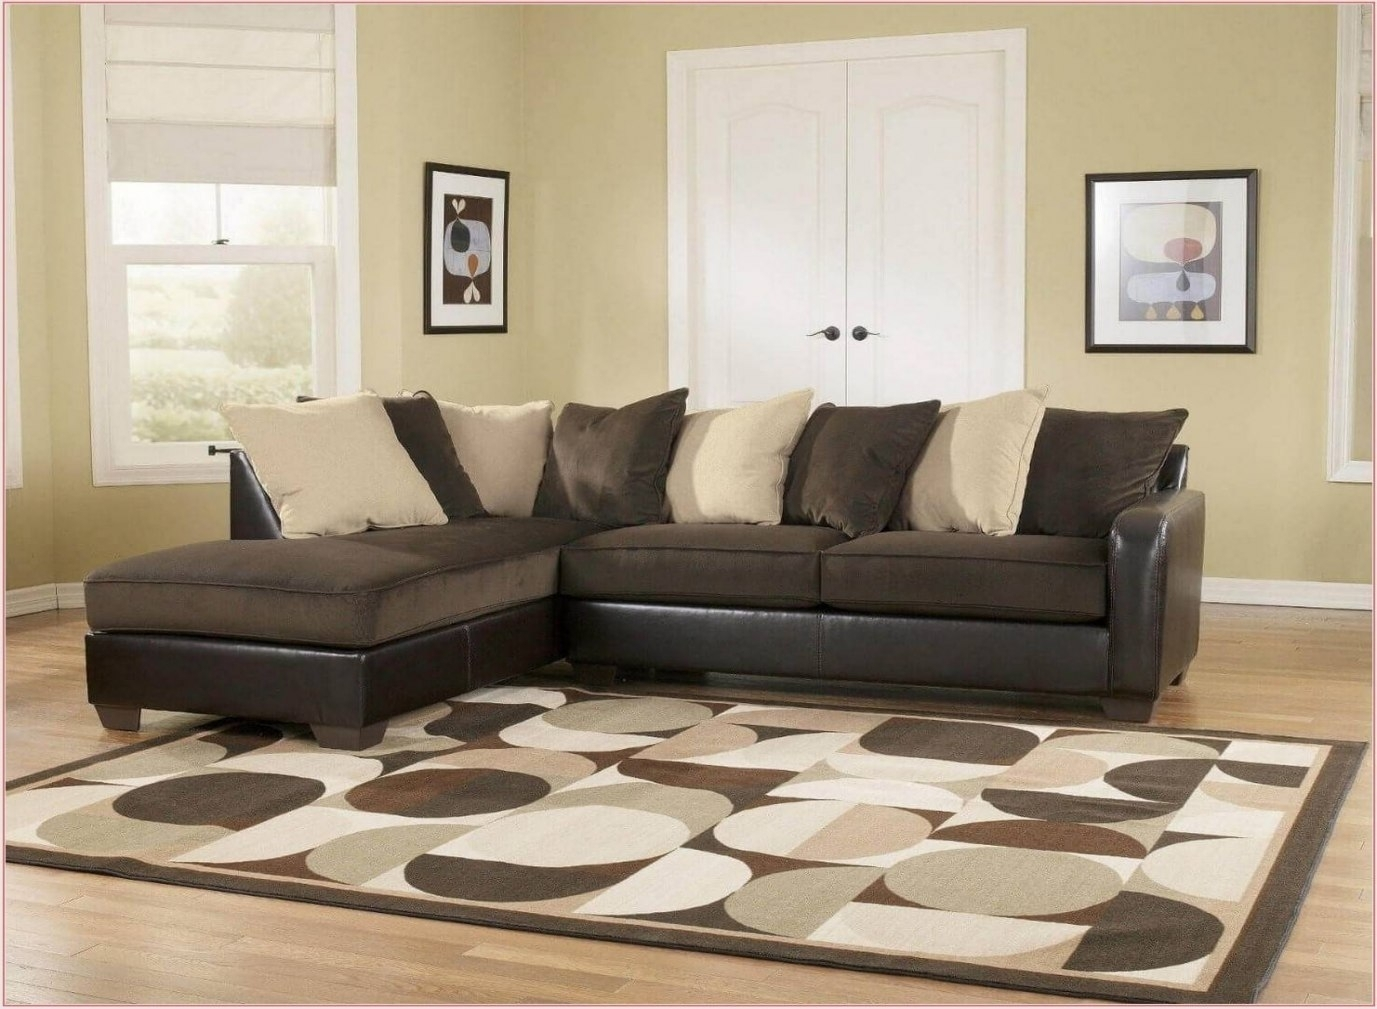 Backless Sectional Sofa Book Of Stefanie Backless Sectional Intended For Backless Sectional Sofa (Image 2 of 15)